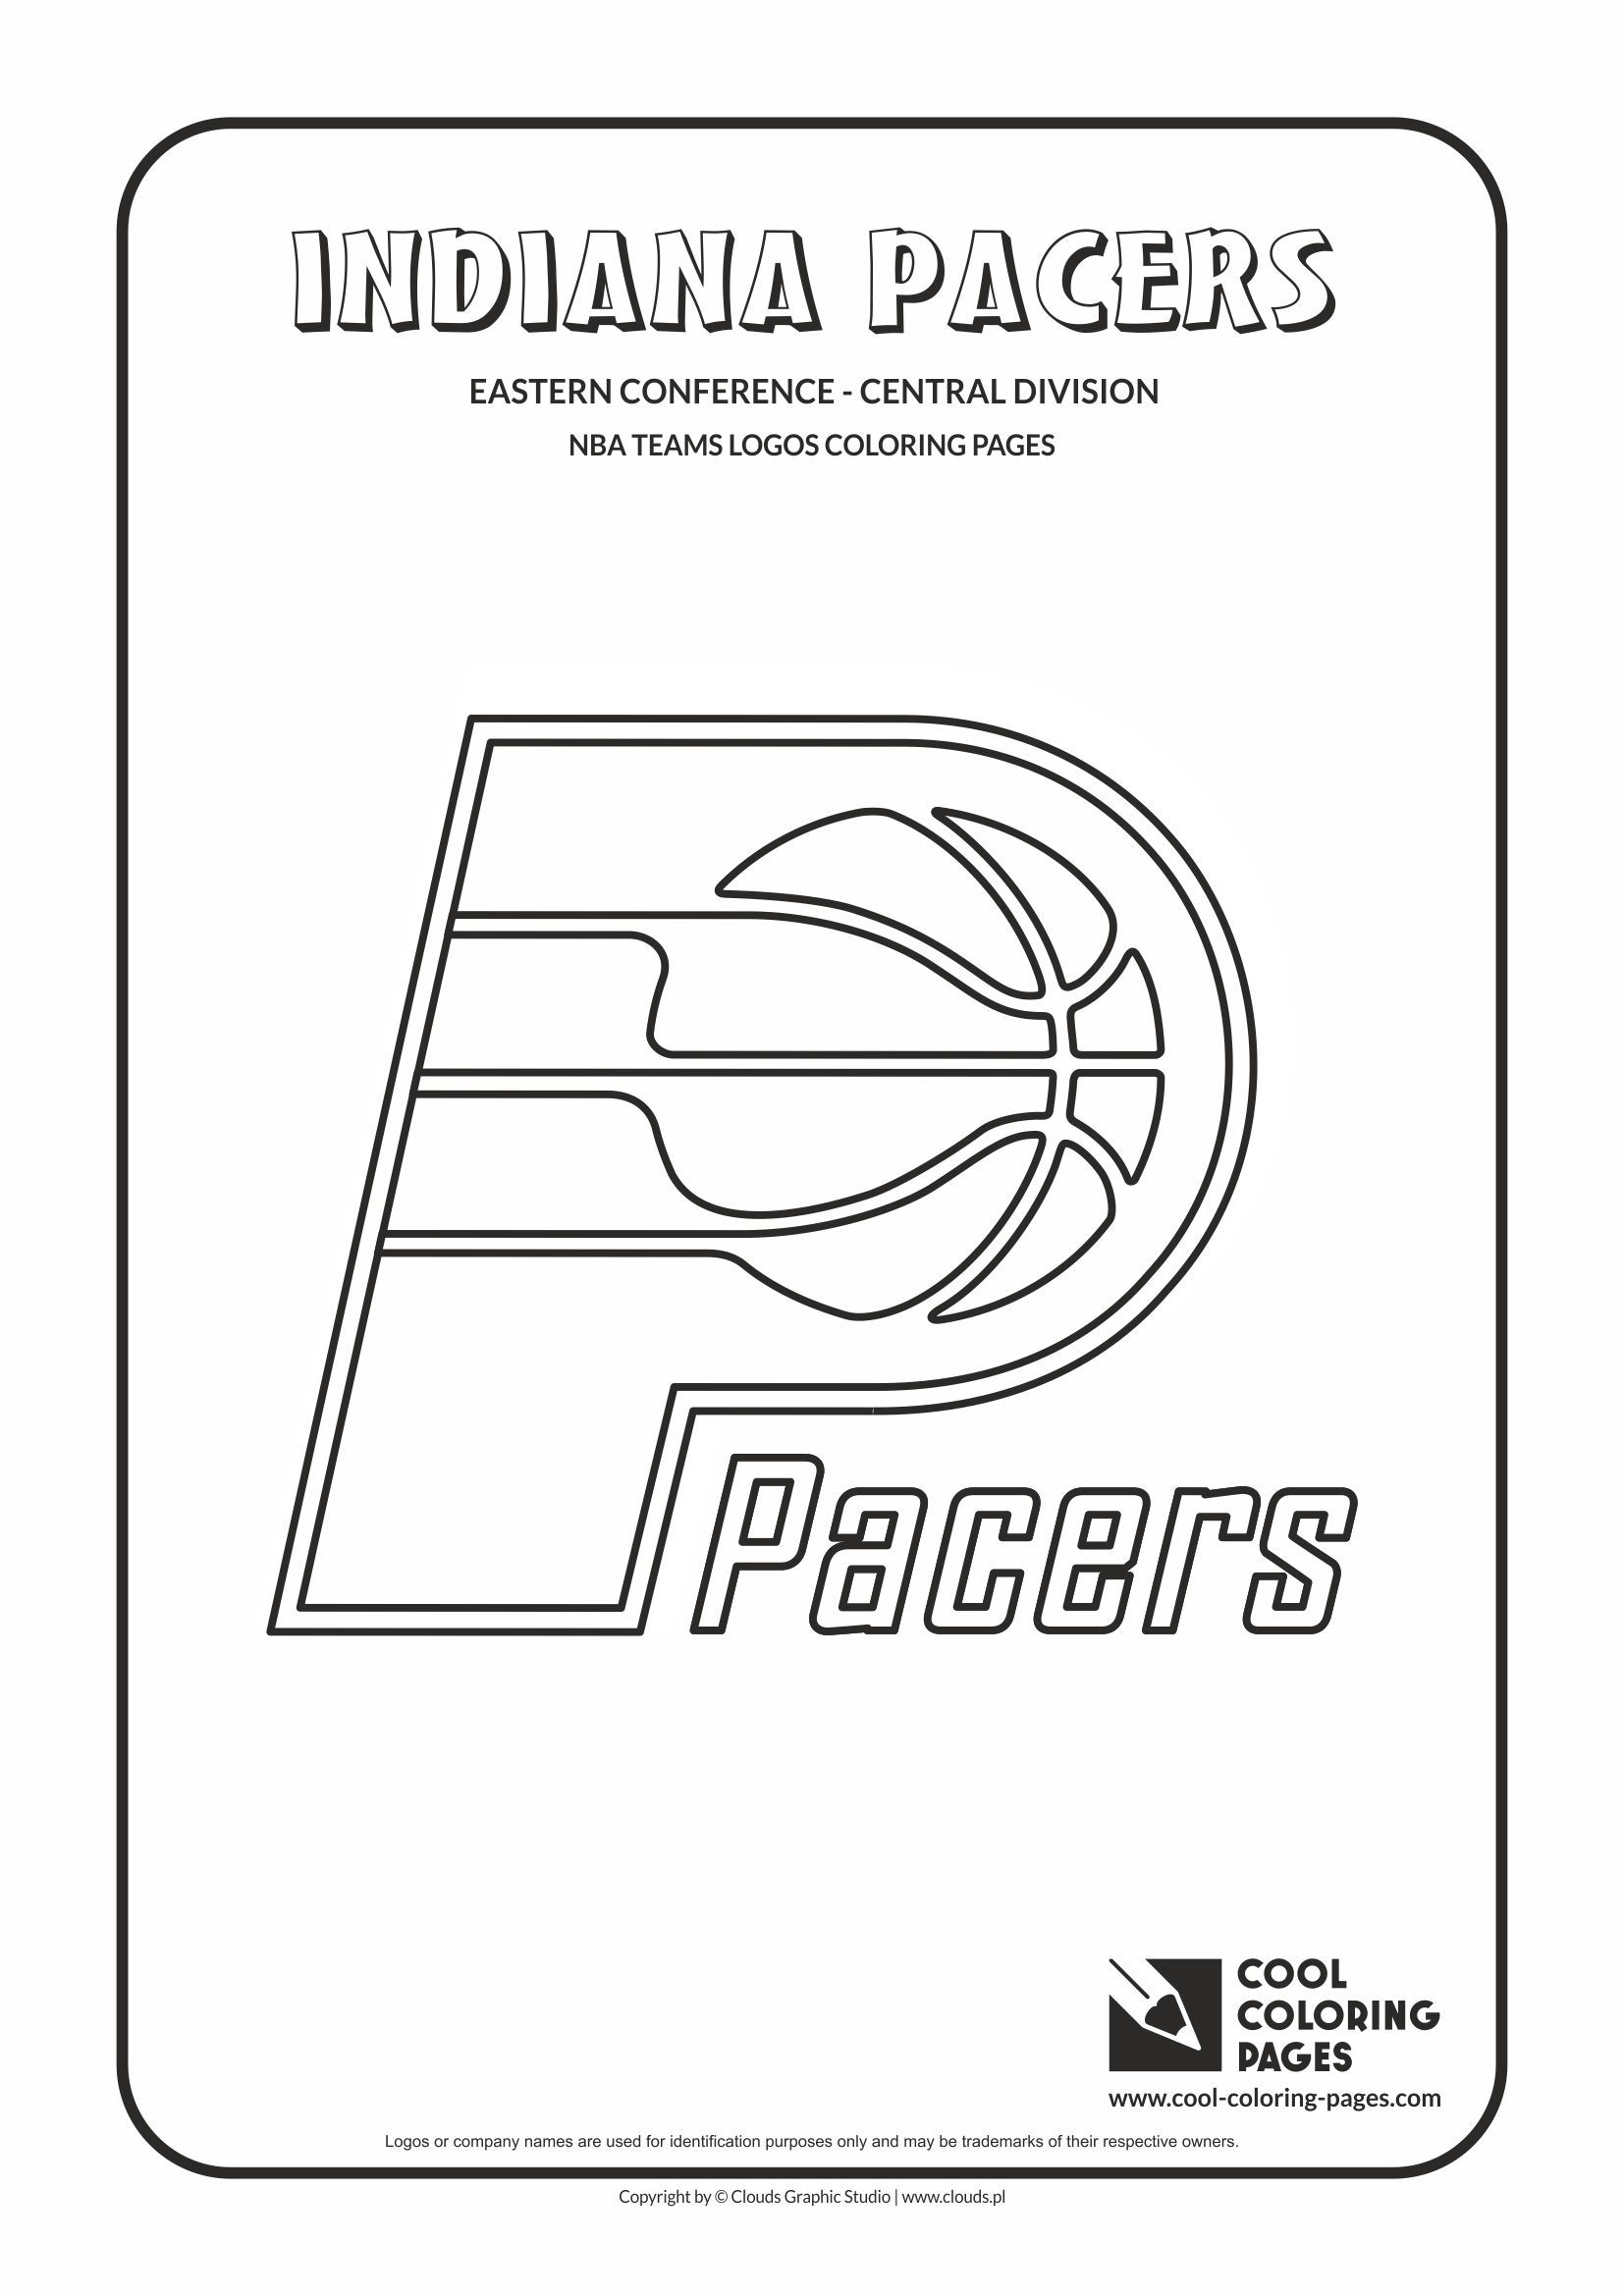 Indiana Pacers Nba Basketball Teams Logos Coloring Pages With